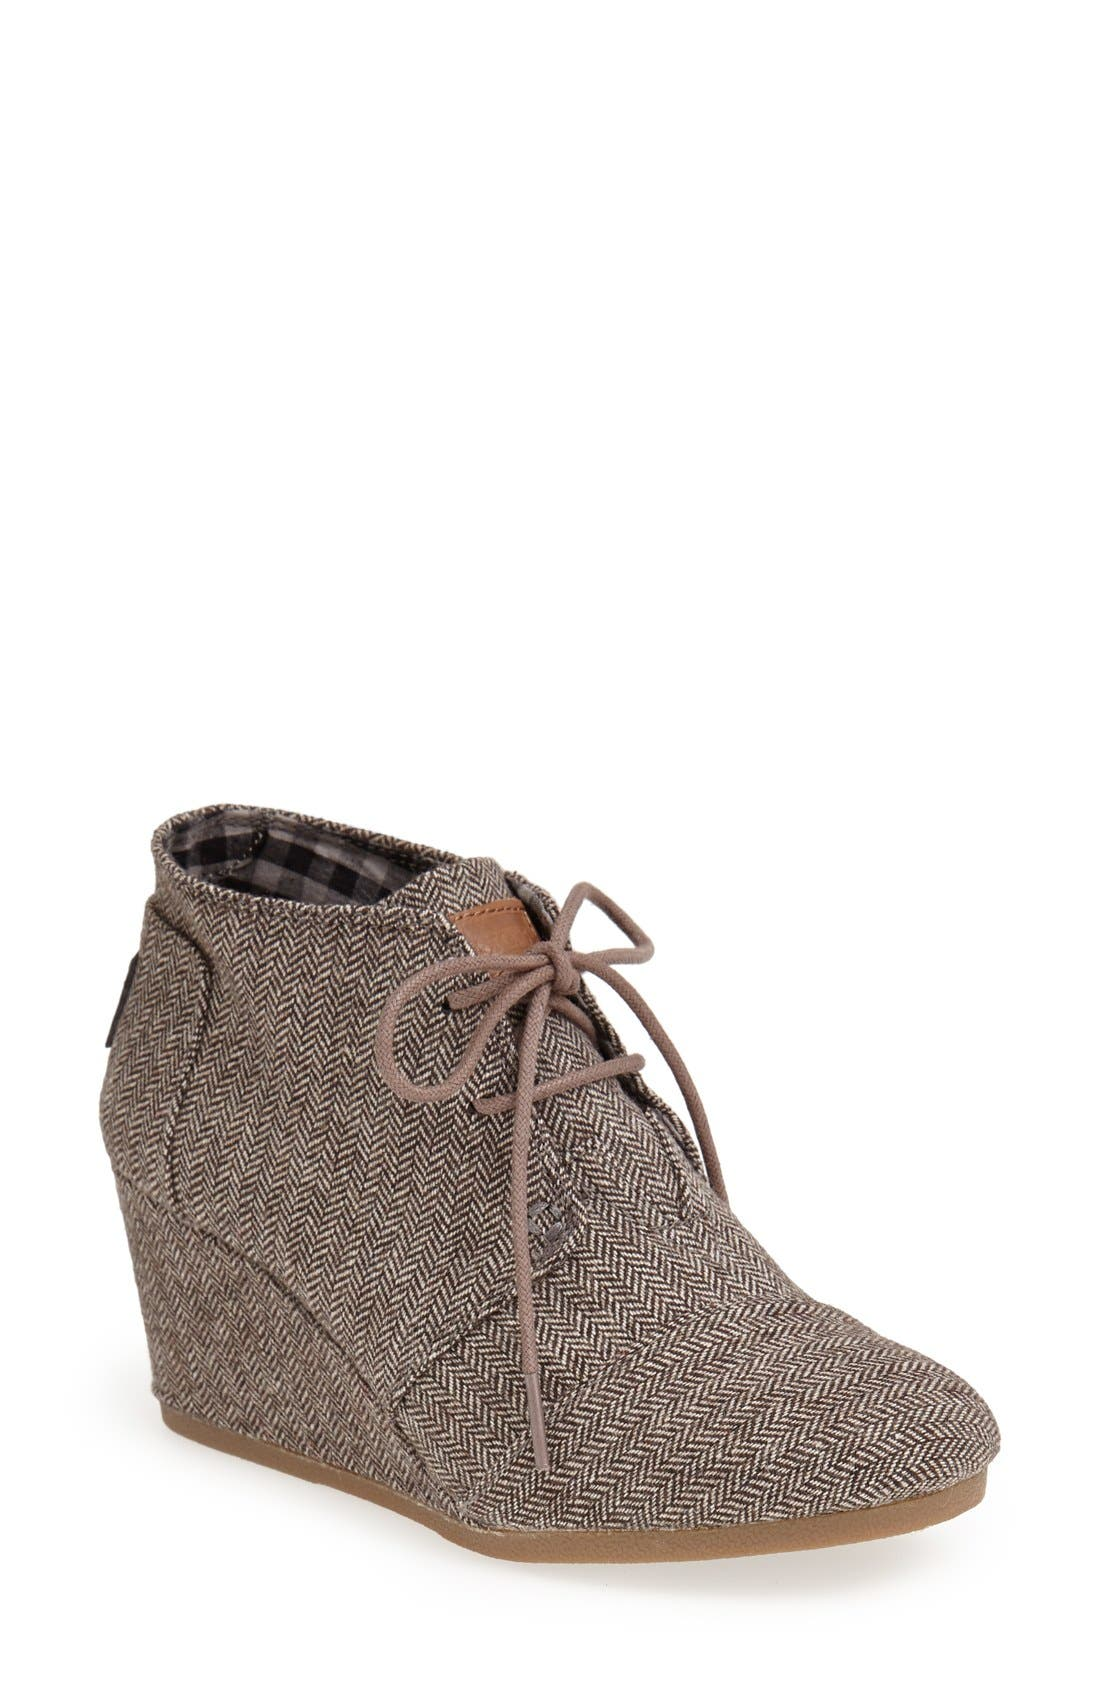 'Desert' Herringbone Wedge Bootie,                         Main,                         color, Grey